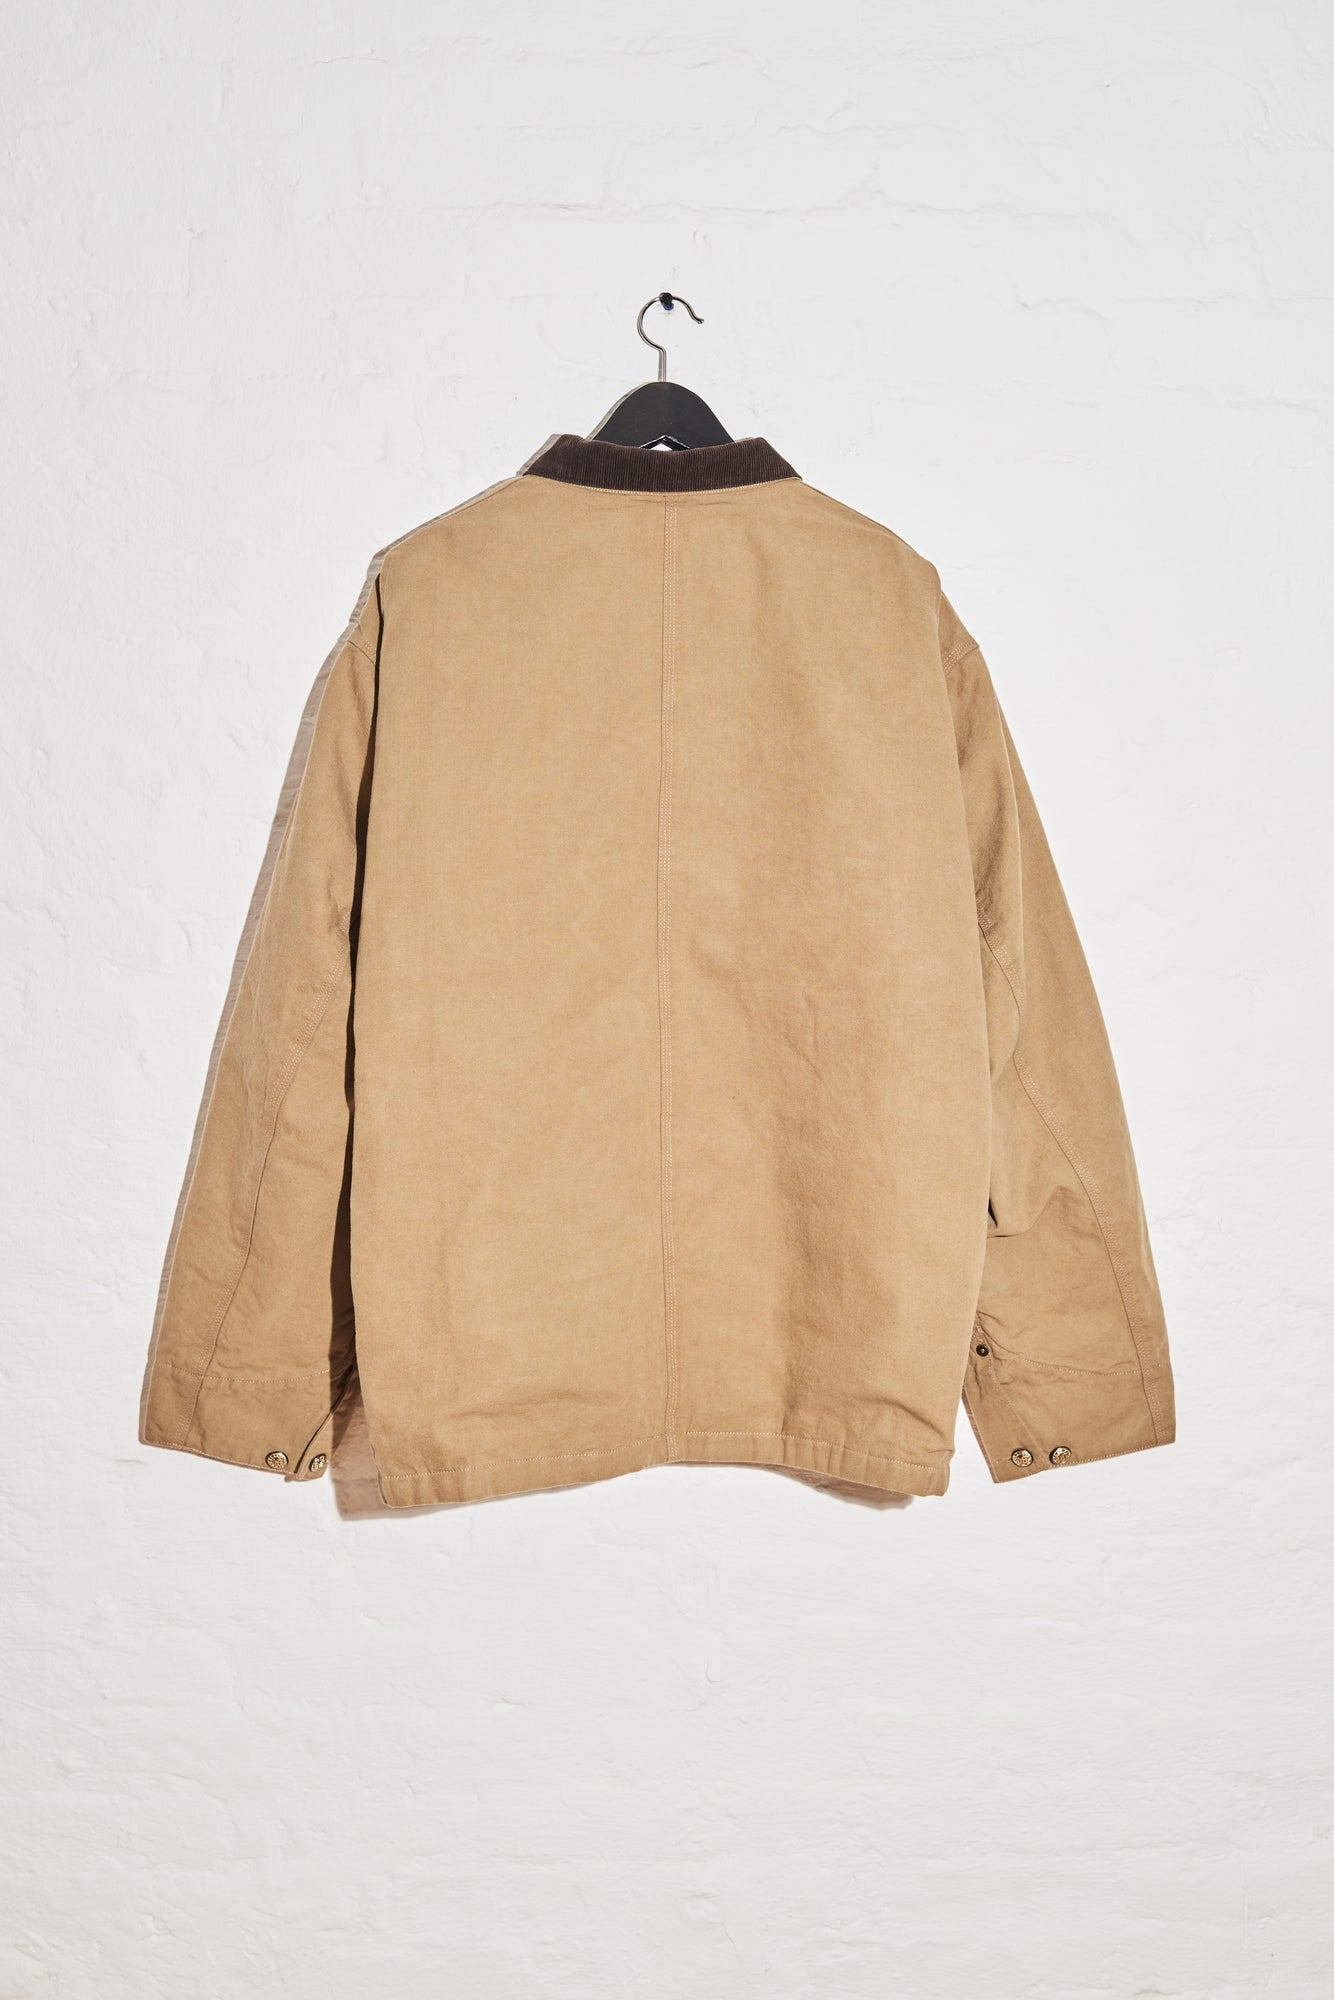 Workman Jacket - Tan Olive